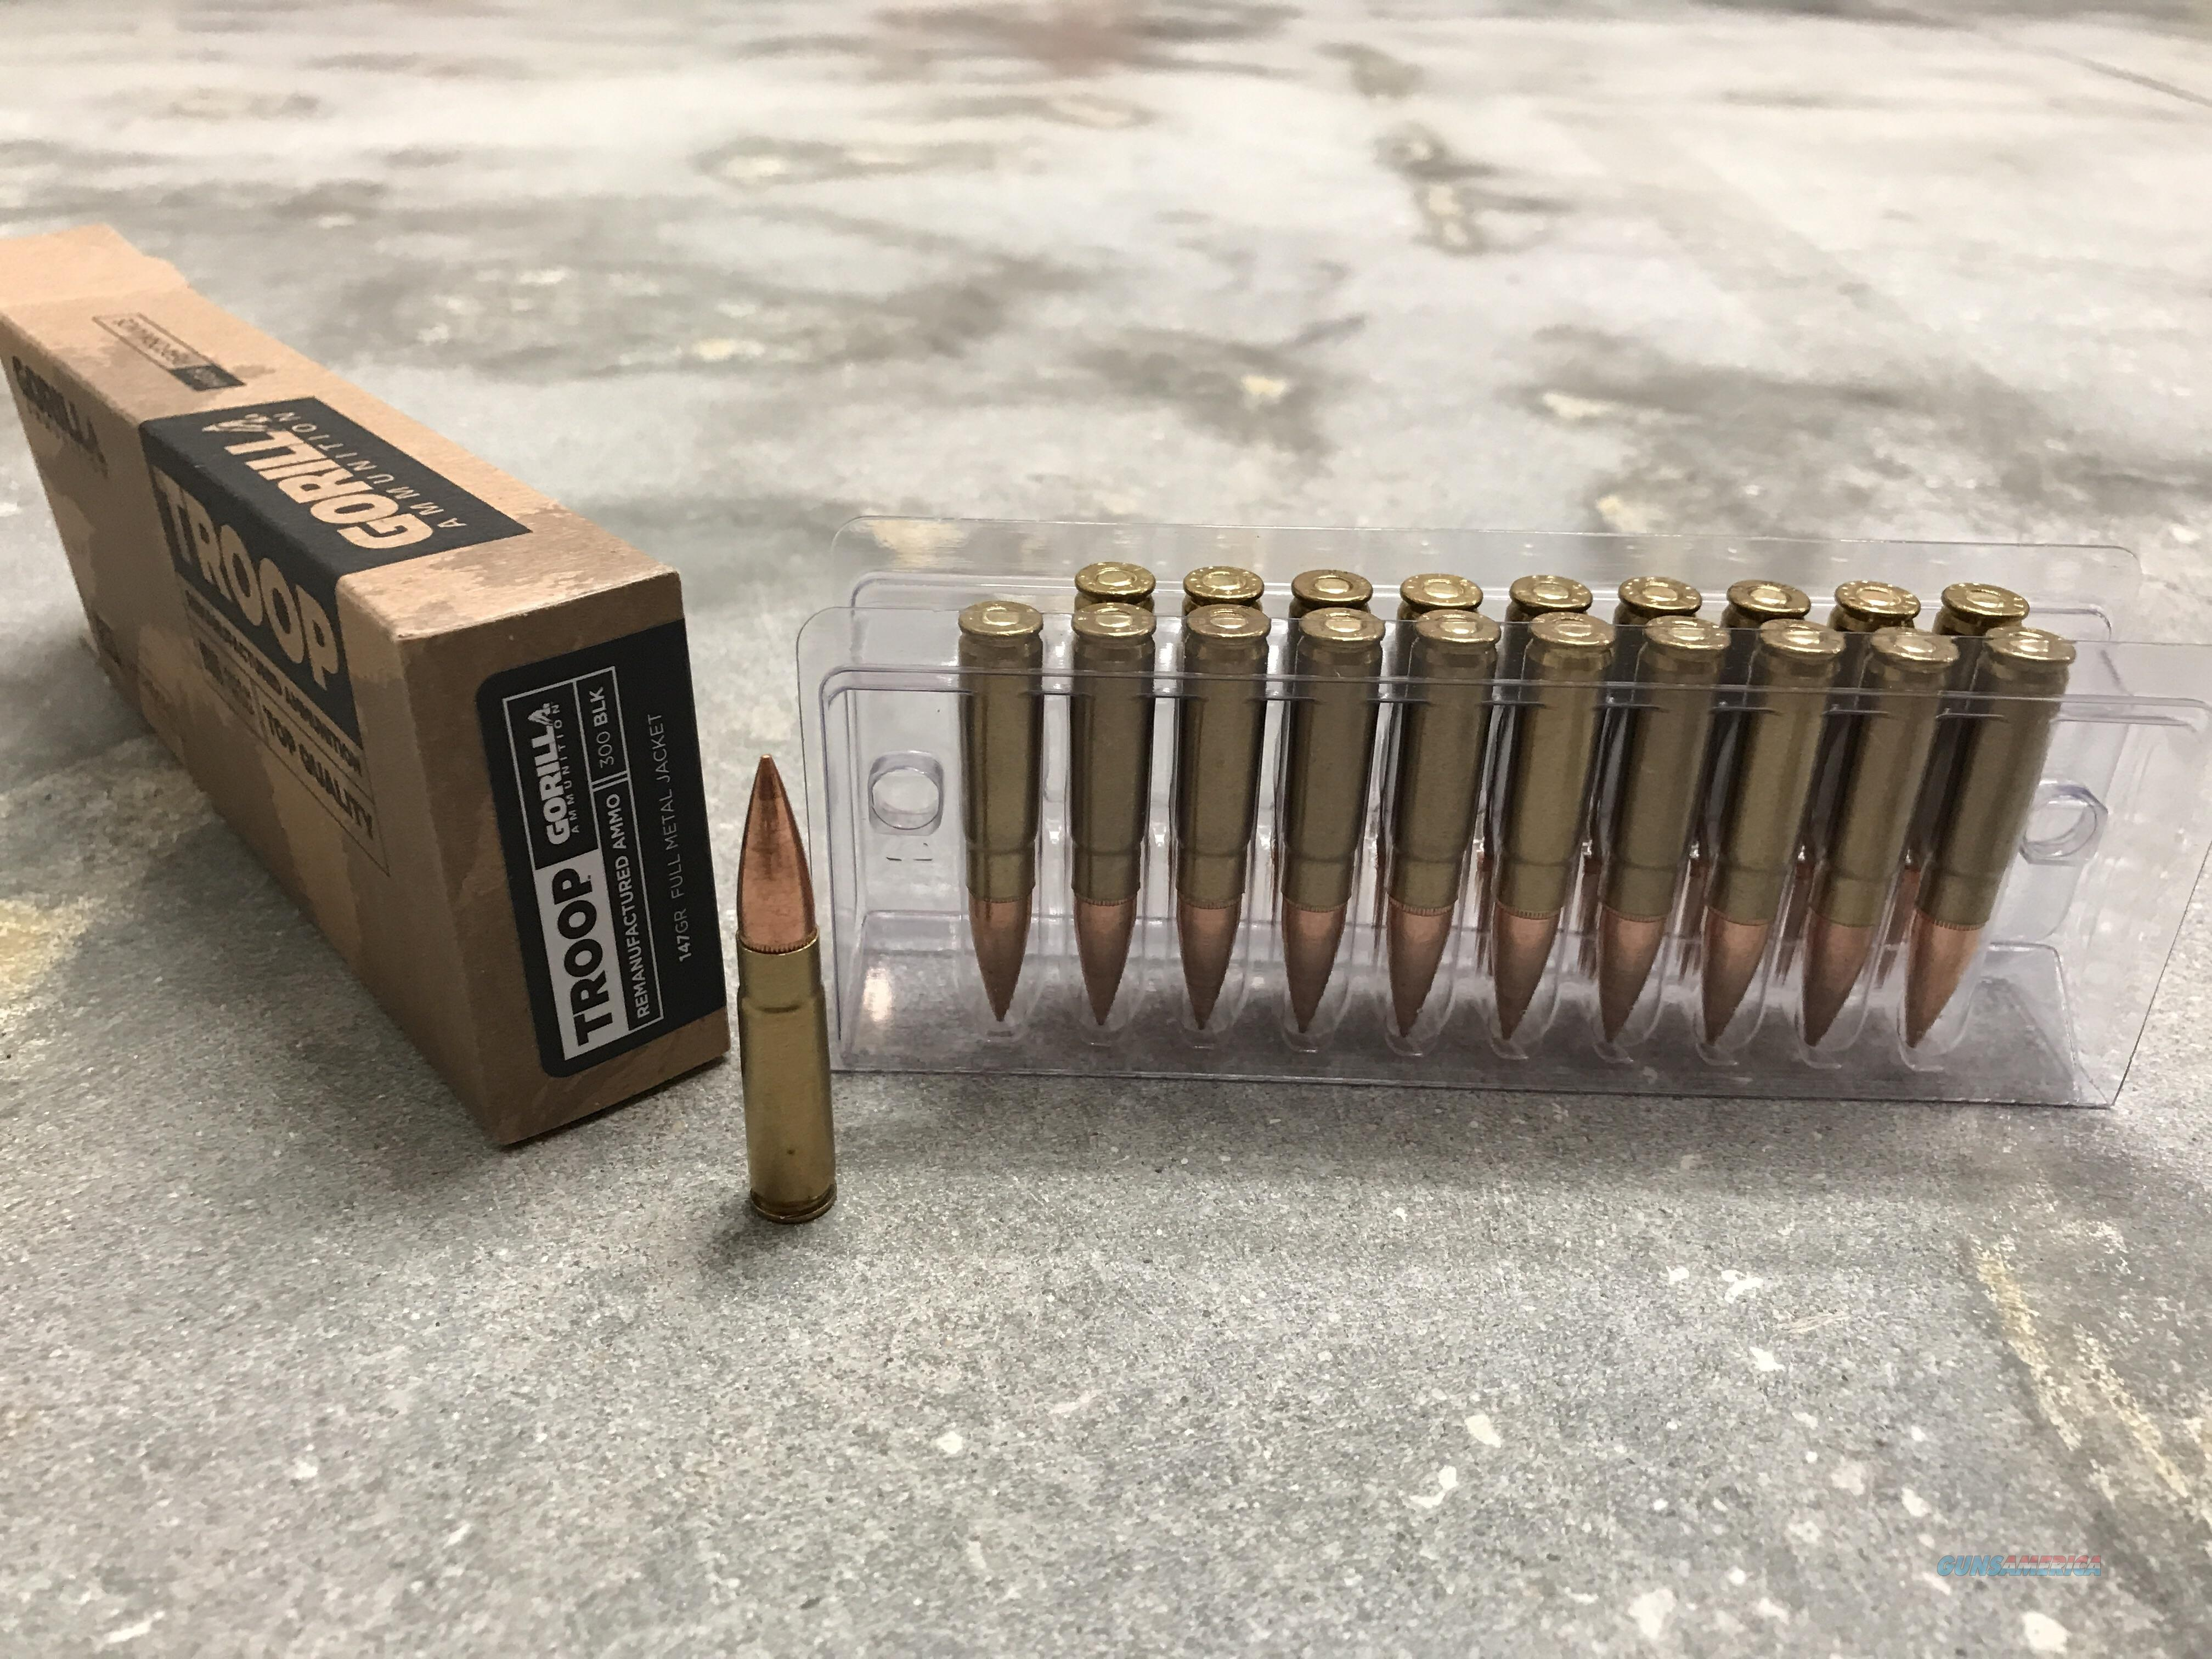 Gorilla Ammunition Troop 300 Blackout 147gr FMJ, 20 round box  Non-Guns > Ammunition